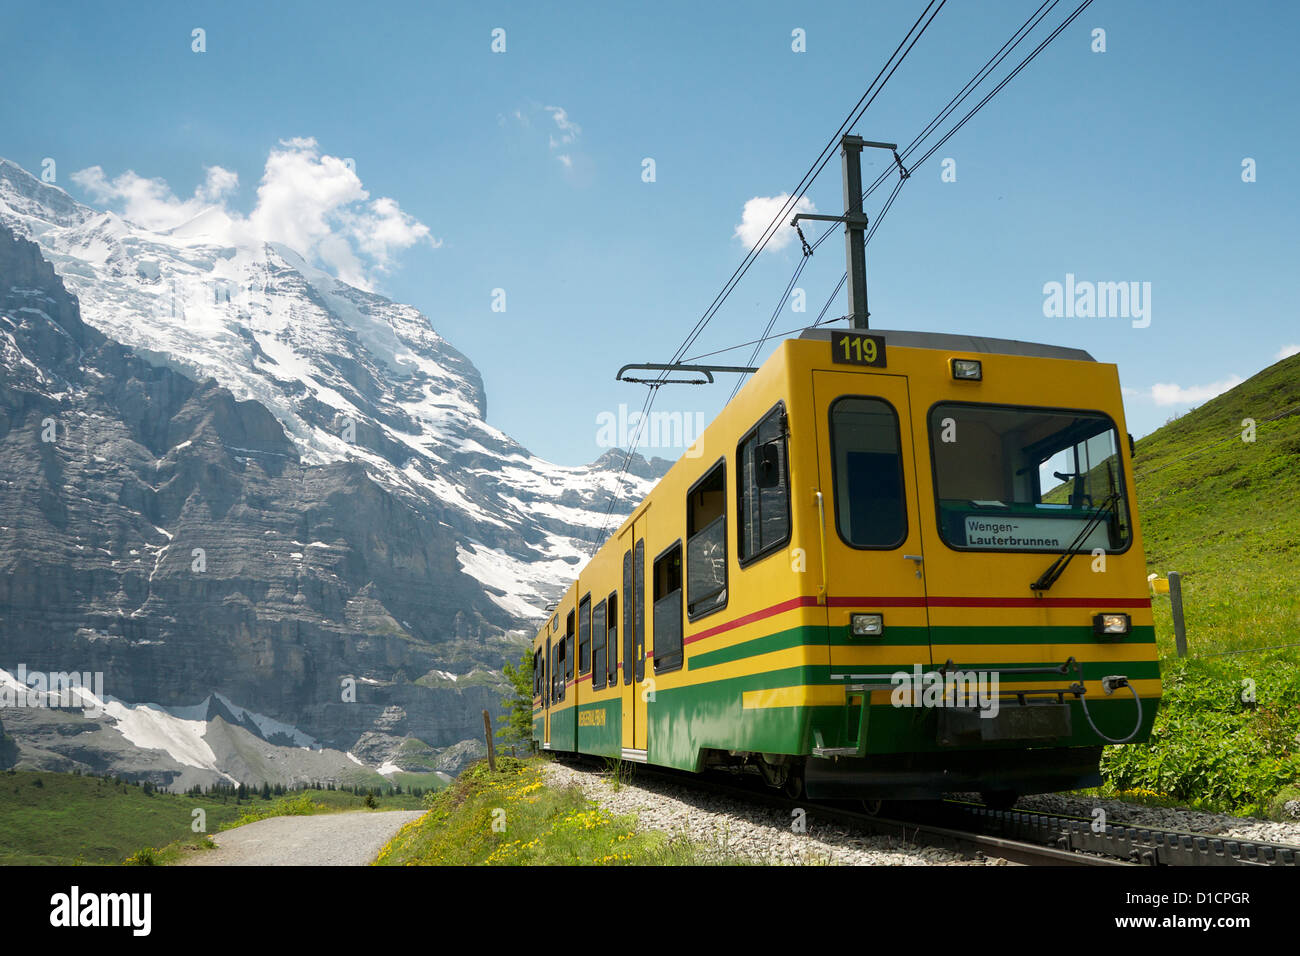 Yellow train Kleine Scheidegg  bernese oberland switzerland - Stock Image